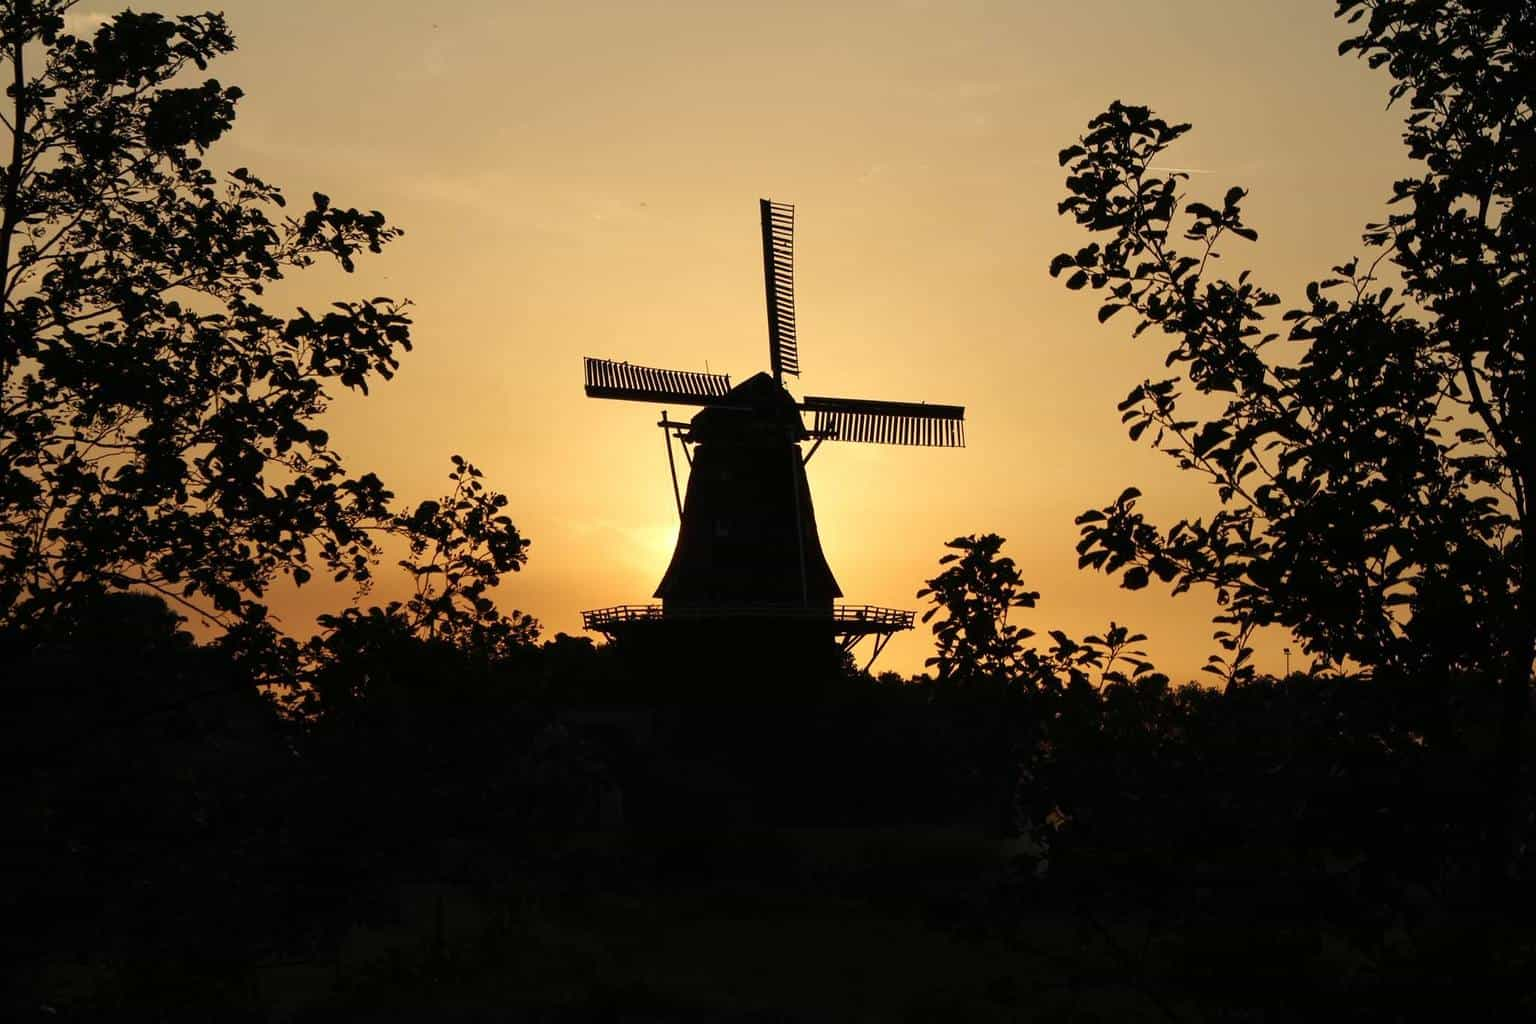 A new day and new pic. From Burdaad the Netherlands i shoot this photo  7-6-2014 21:20